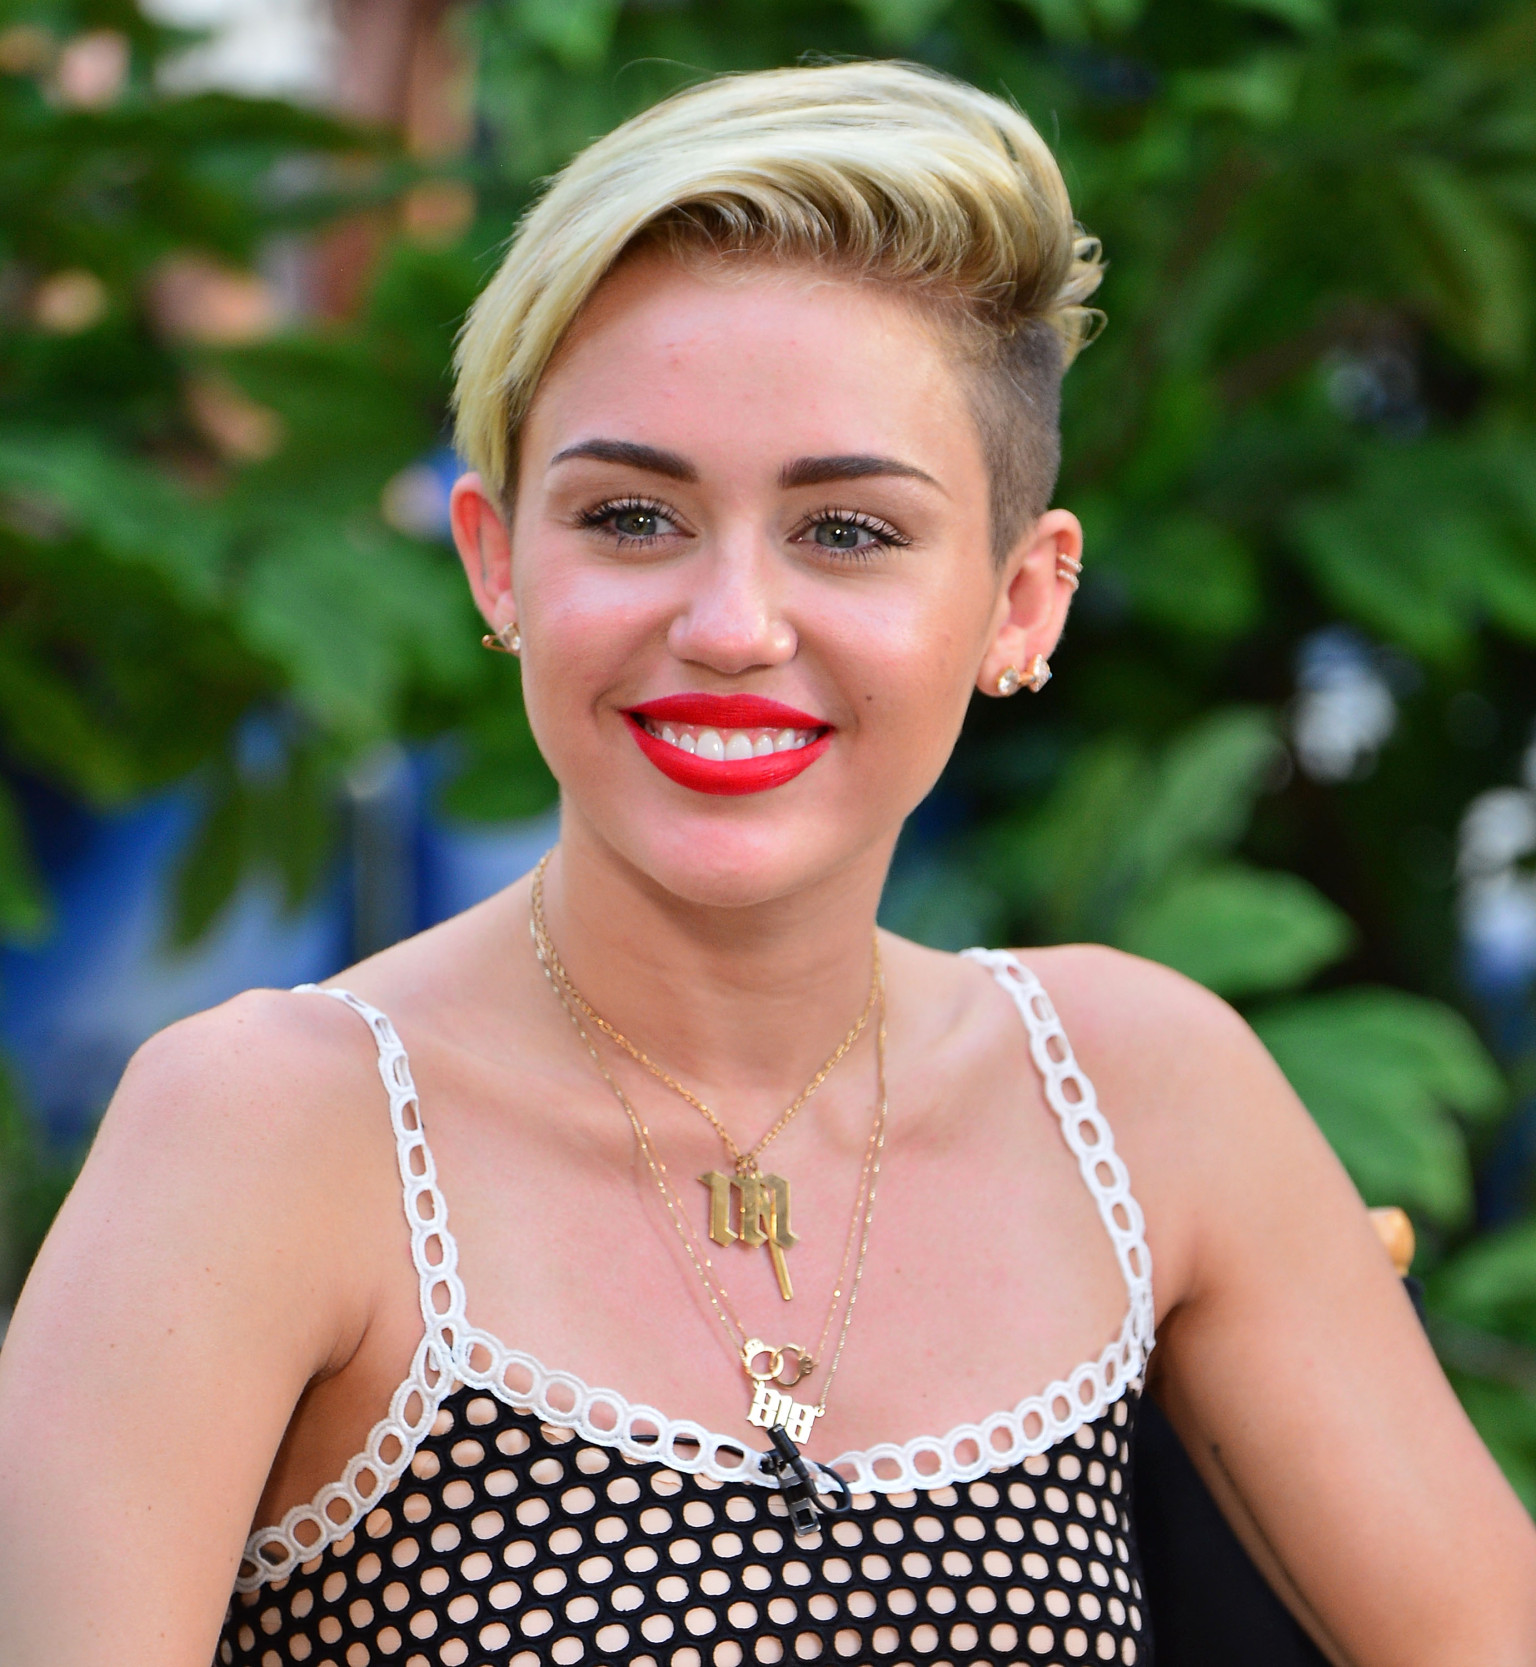 how to style miley cyrus hair miley cyrus haircut changed huffpost 7963